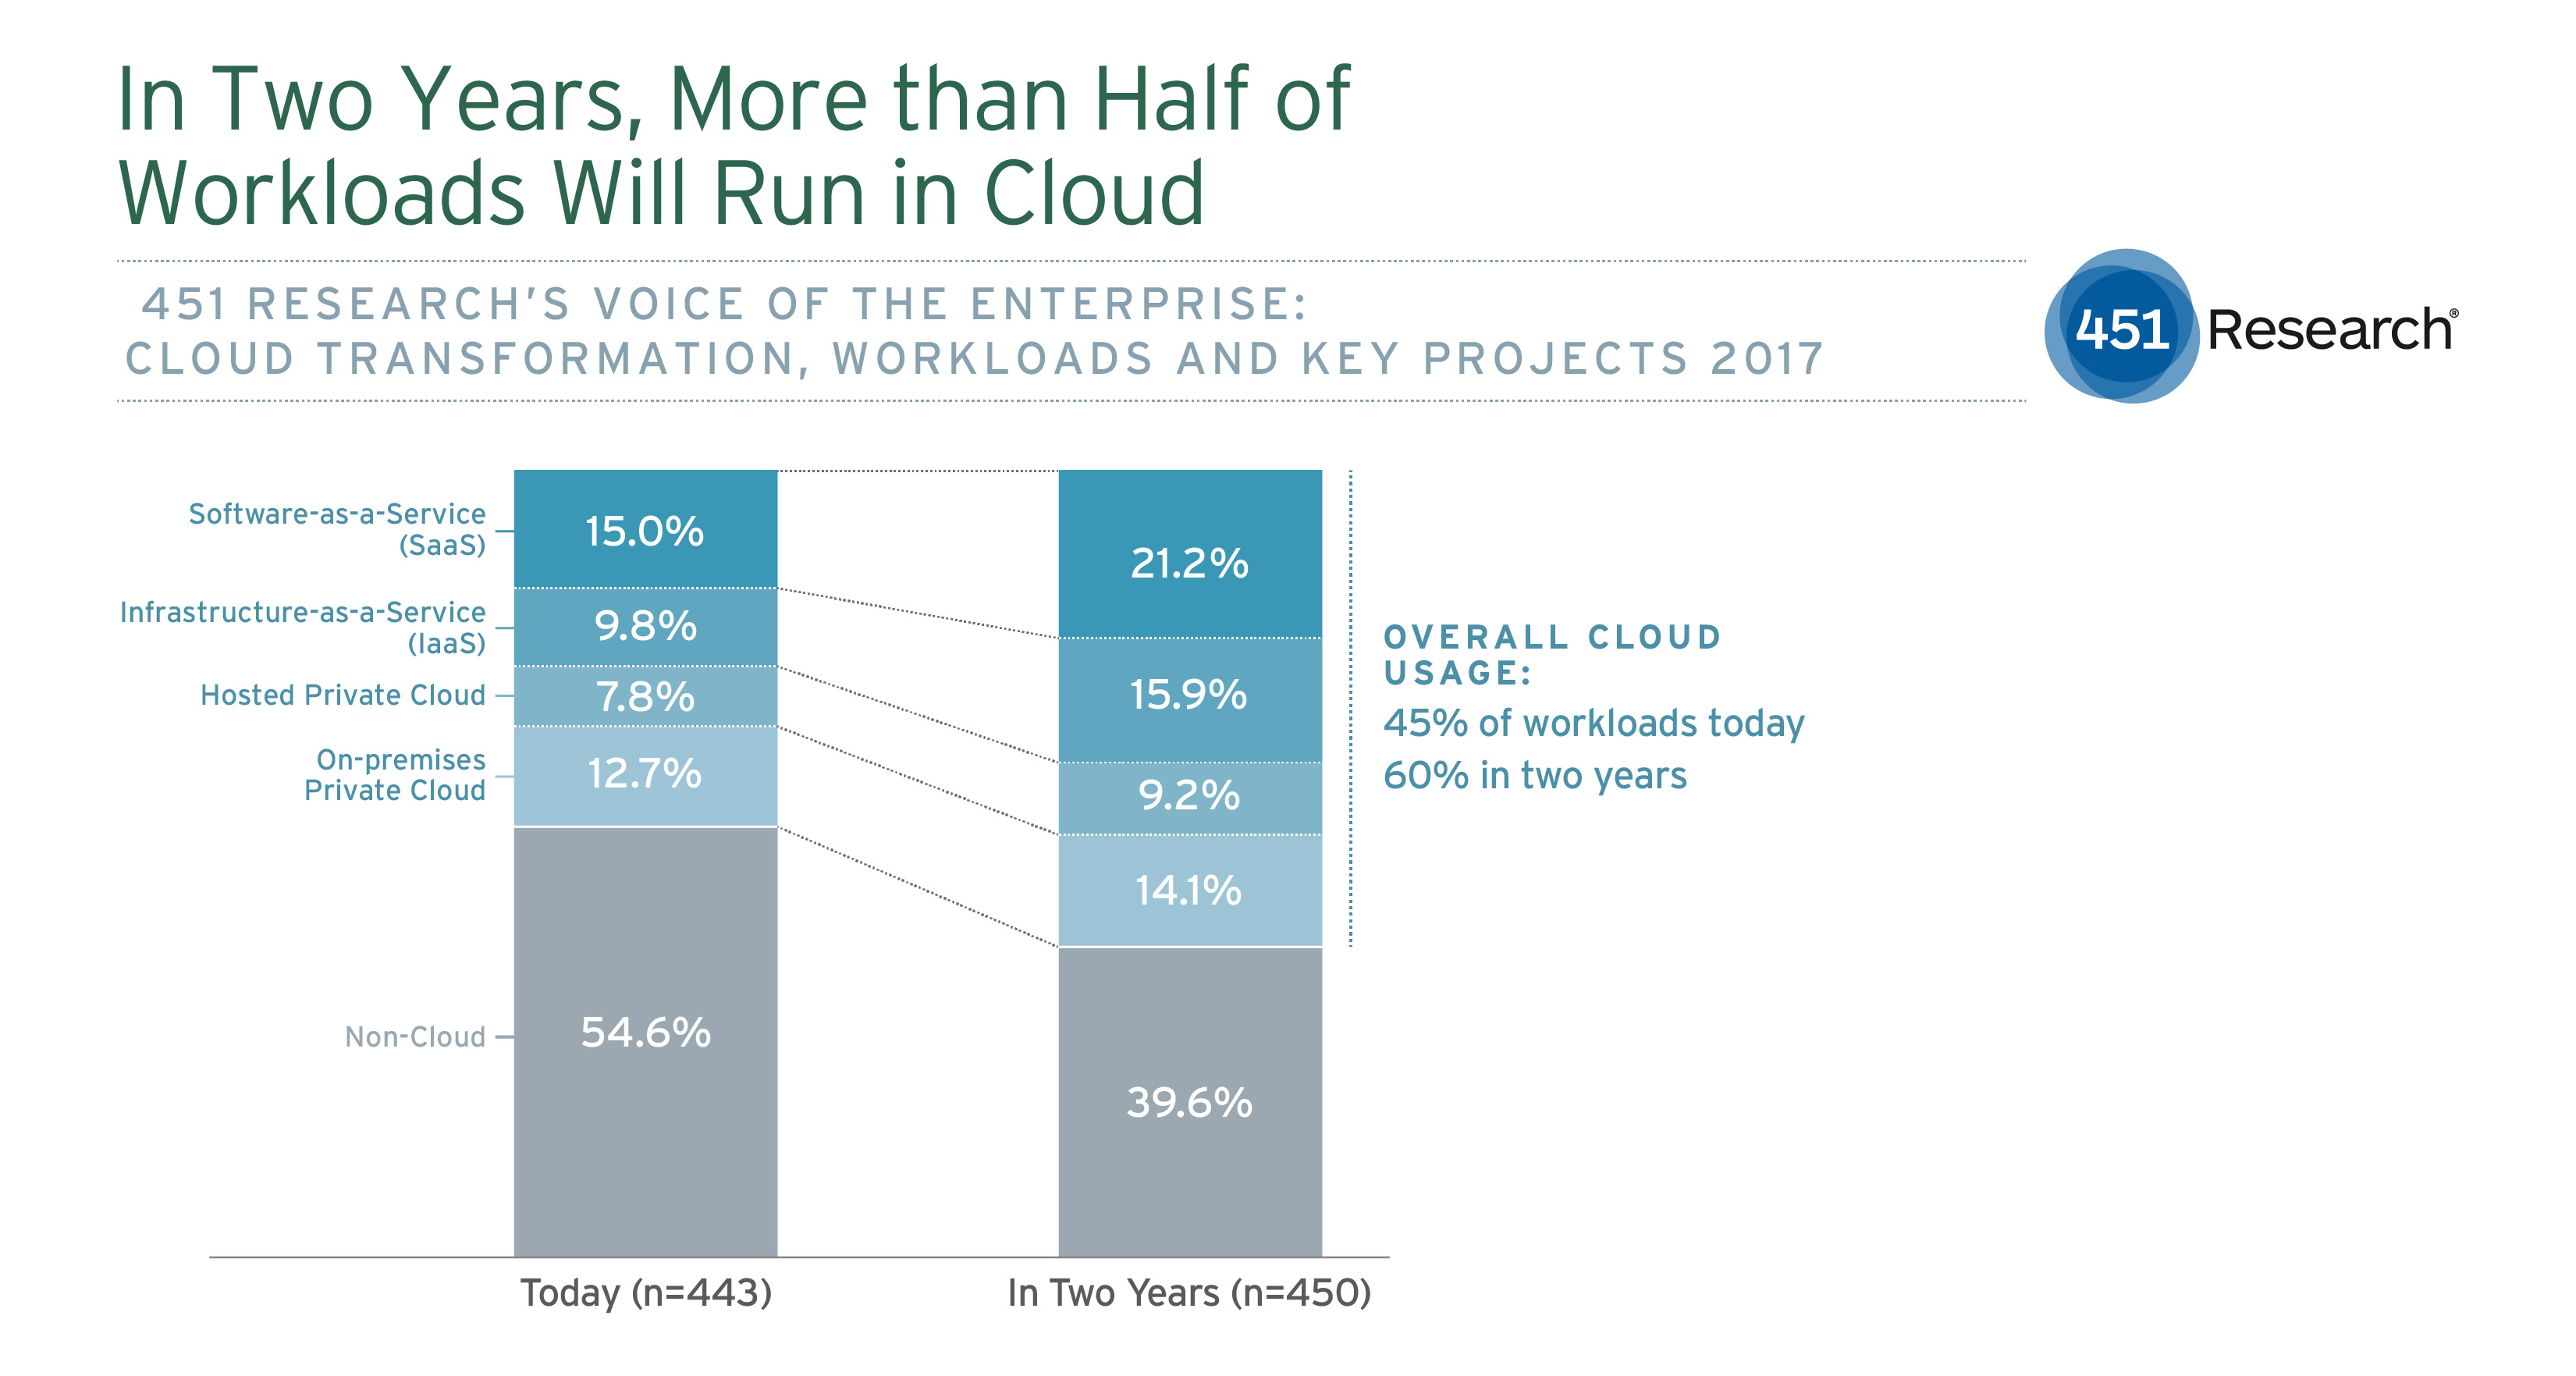 In Two Years, More Than Half of Workloads Will Run in Cloud